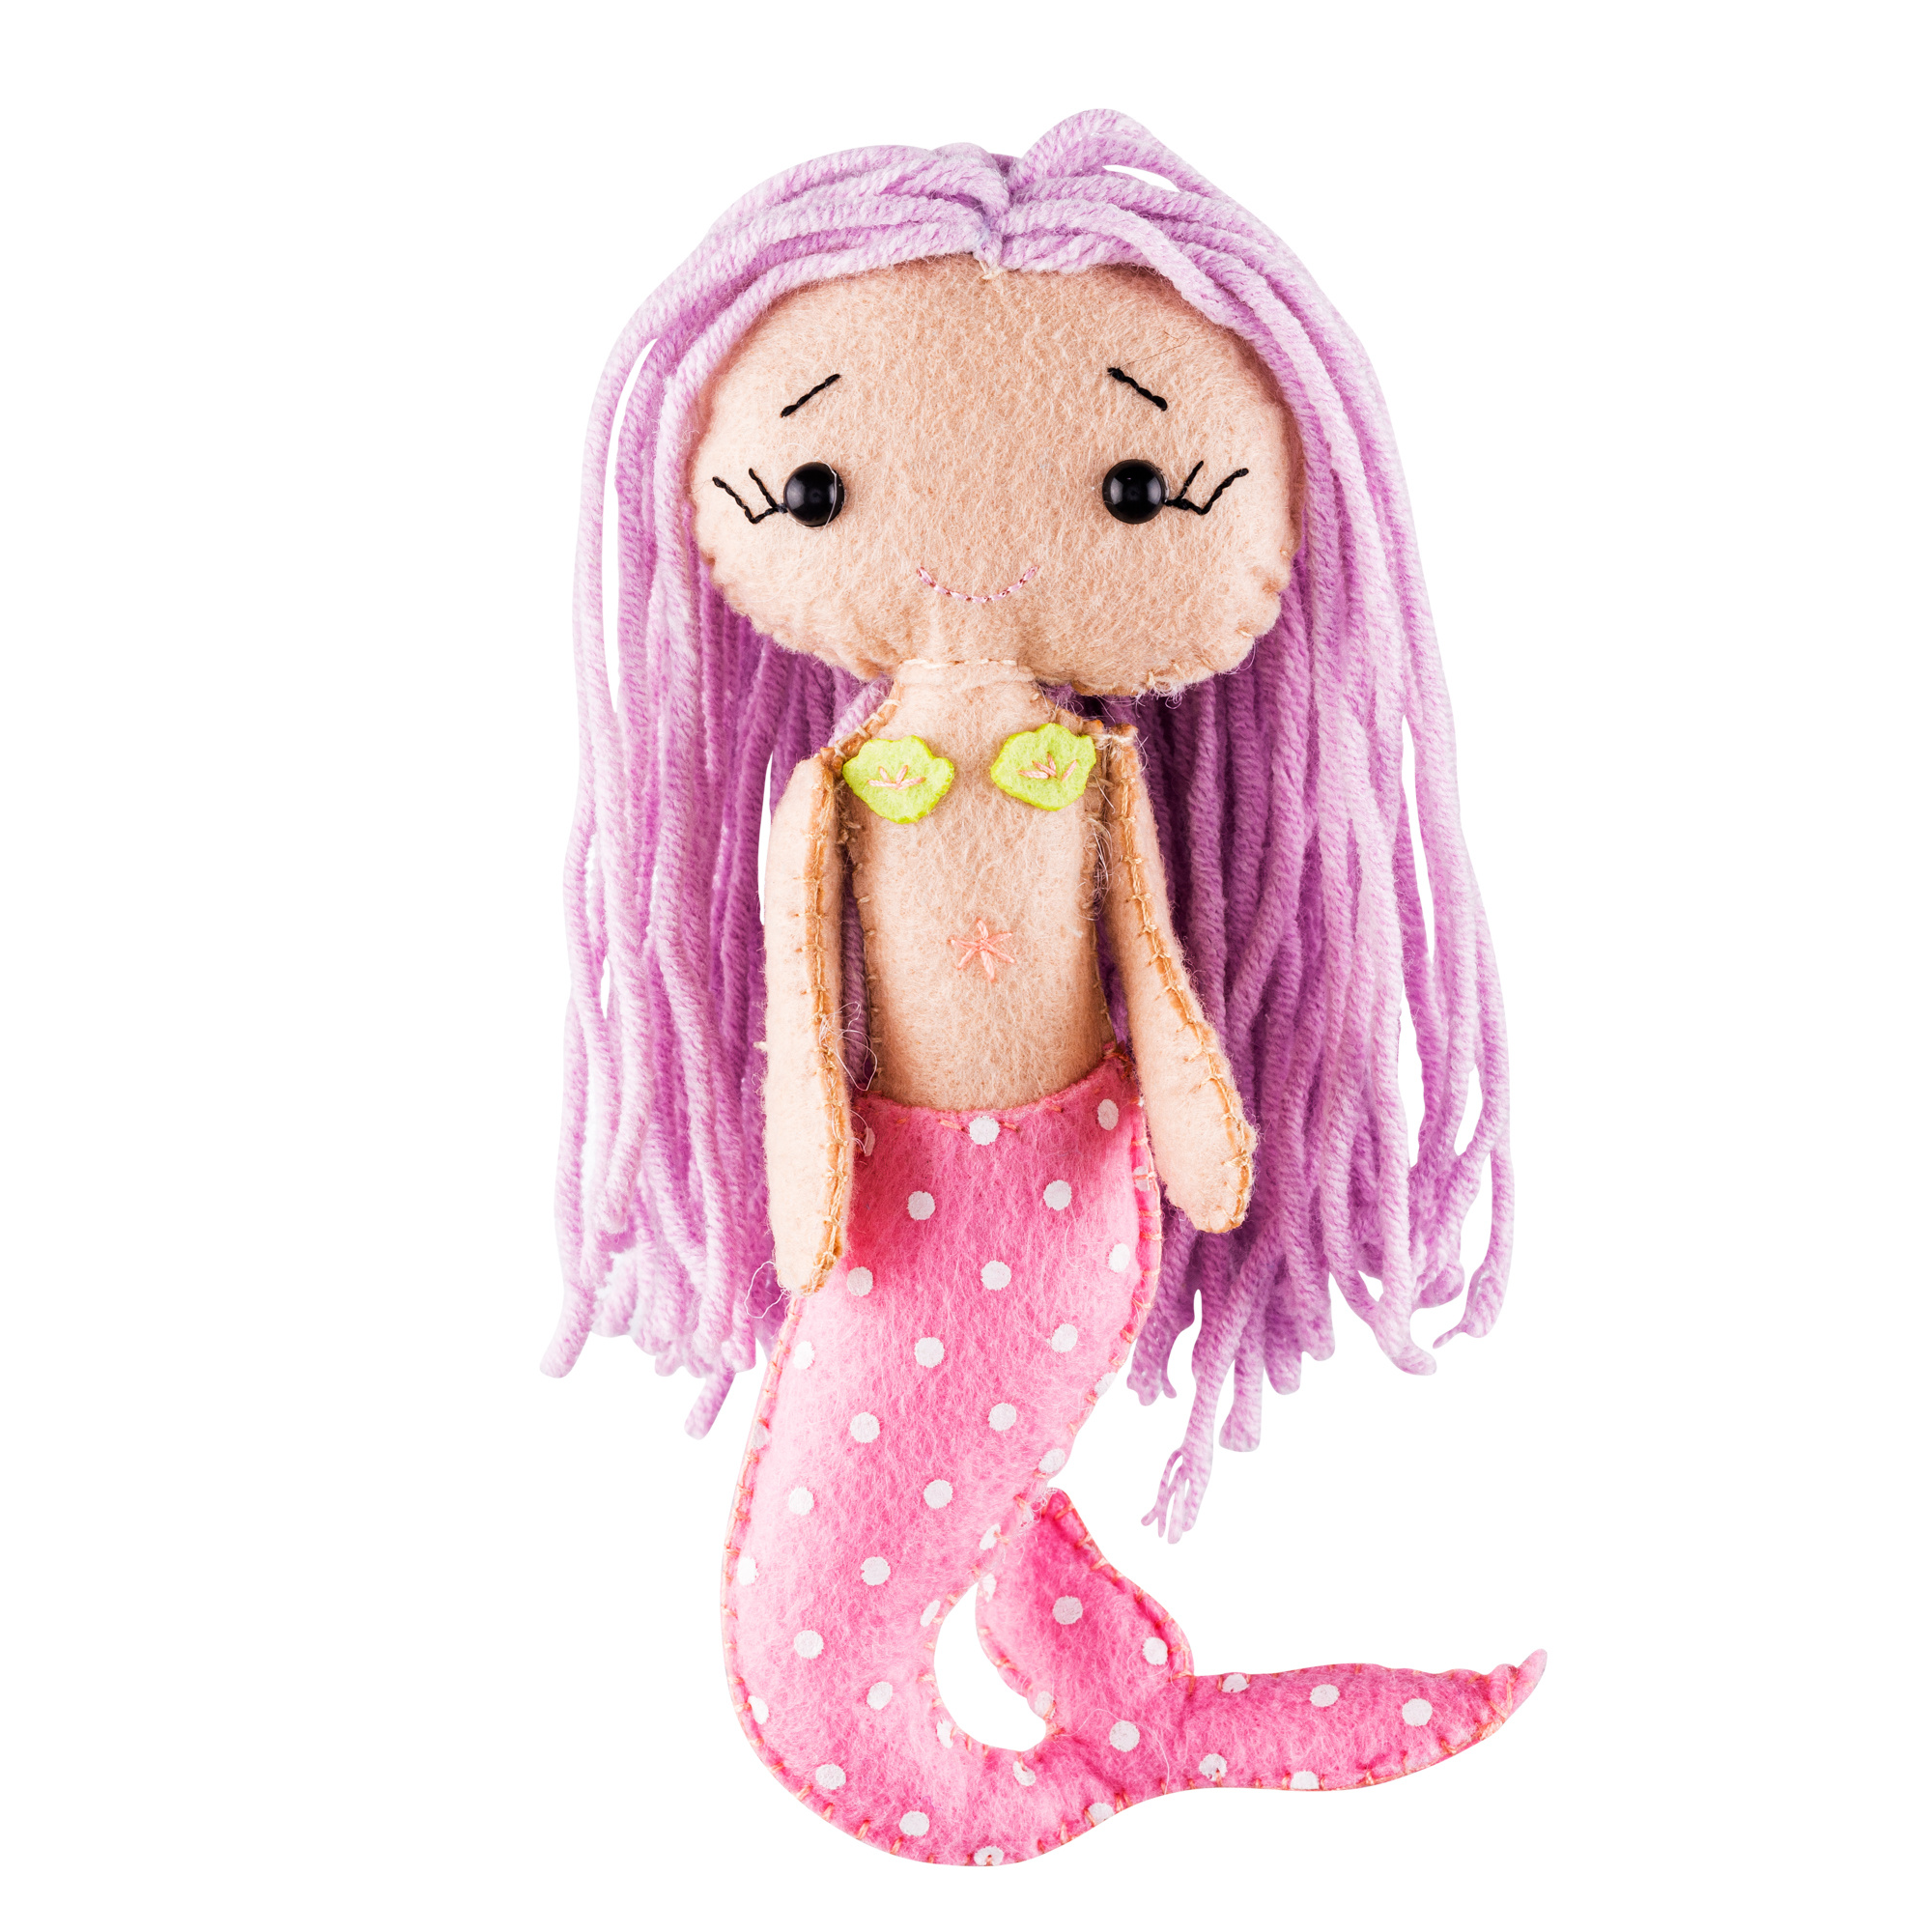 NoordZeemeermin Mermaid lucky dolls